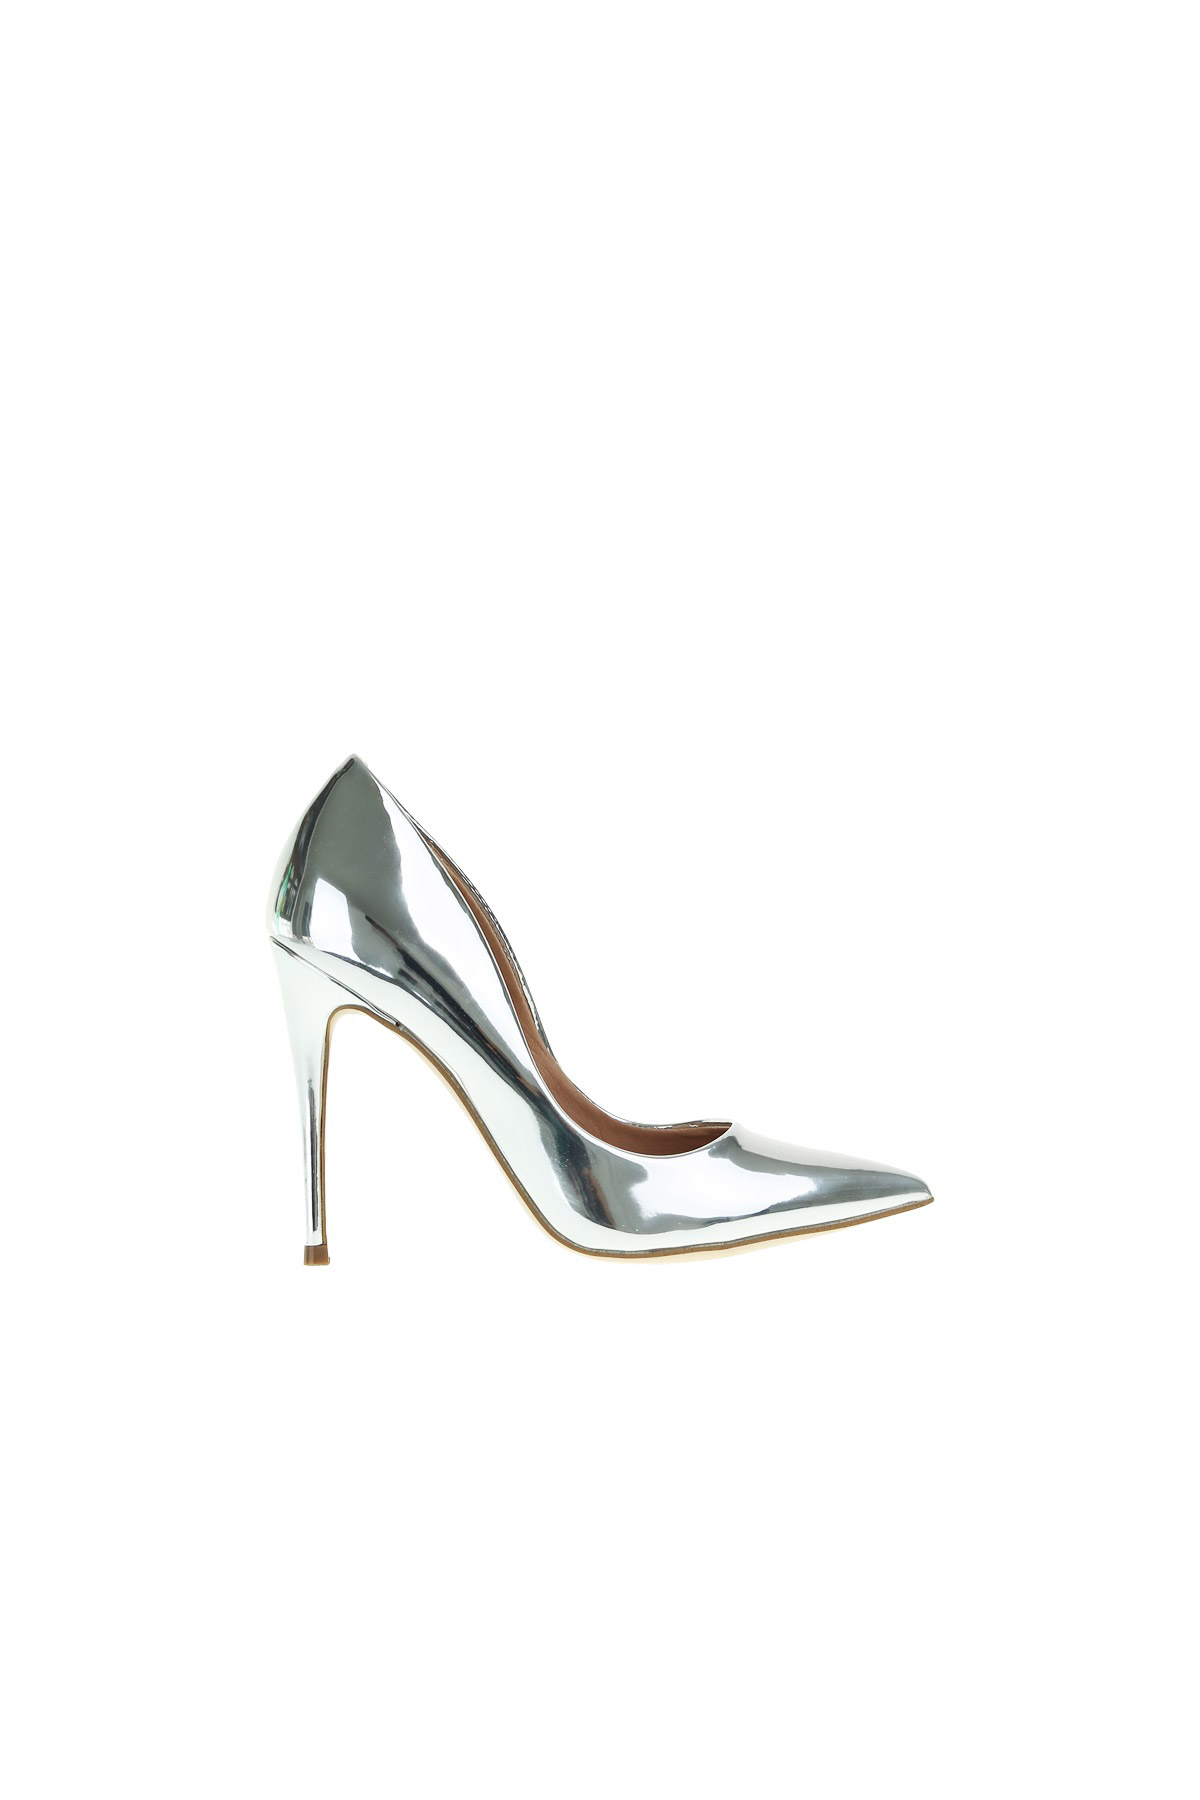 9cfdd4ba131 DECOLLETE  IN MIRRORED LEATHER - STEVE MADDEN - Carbone Boutique